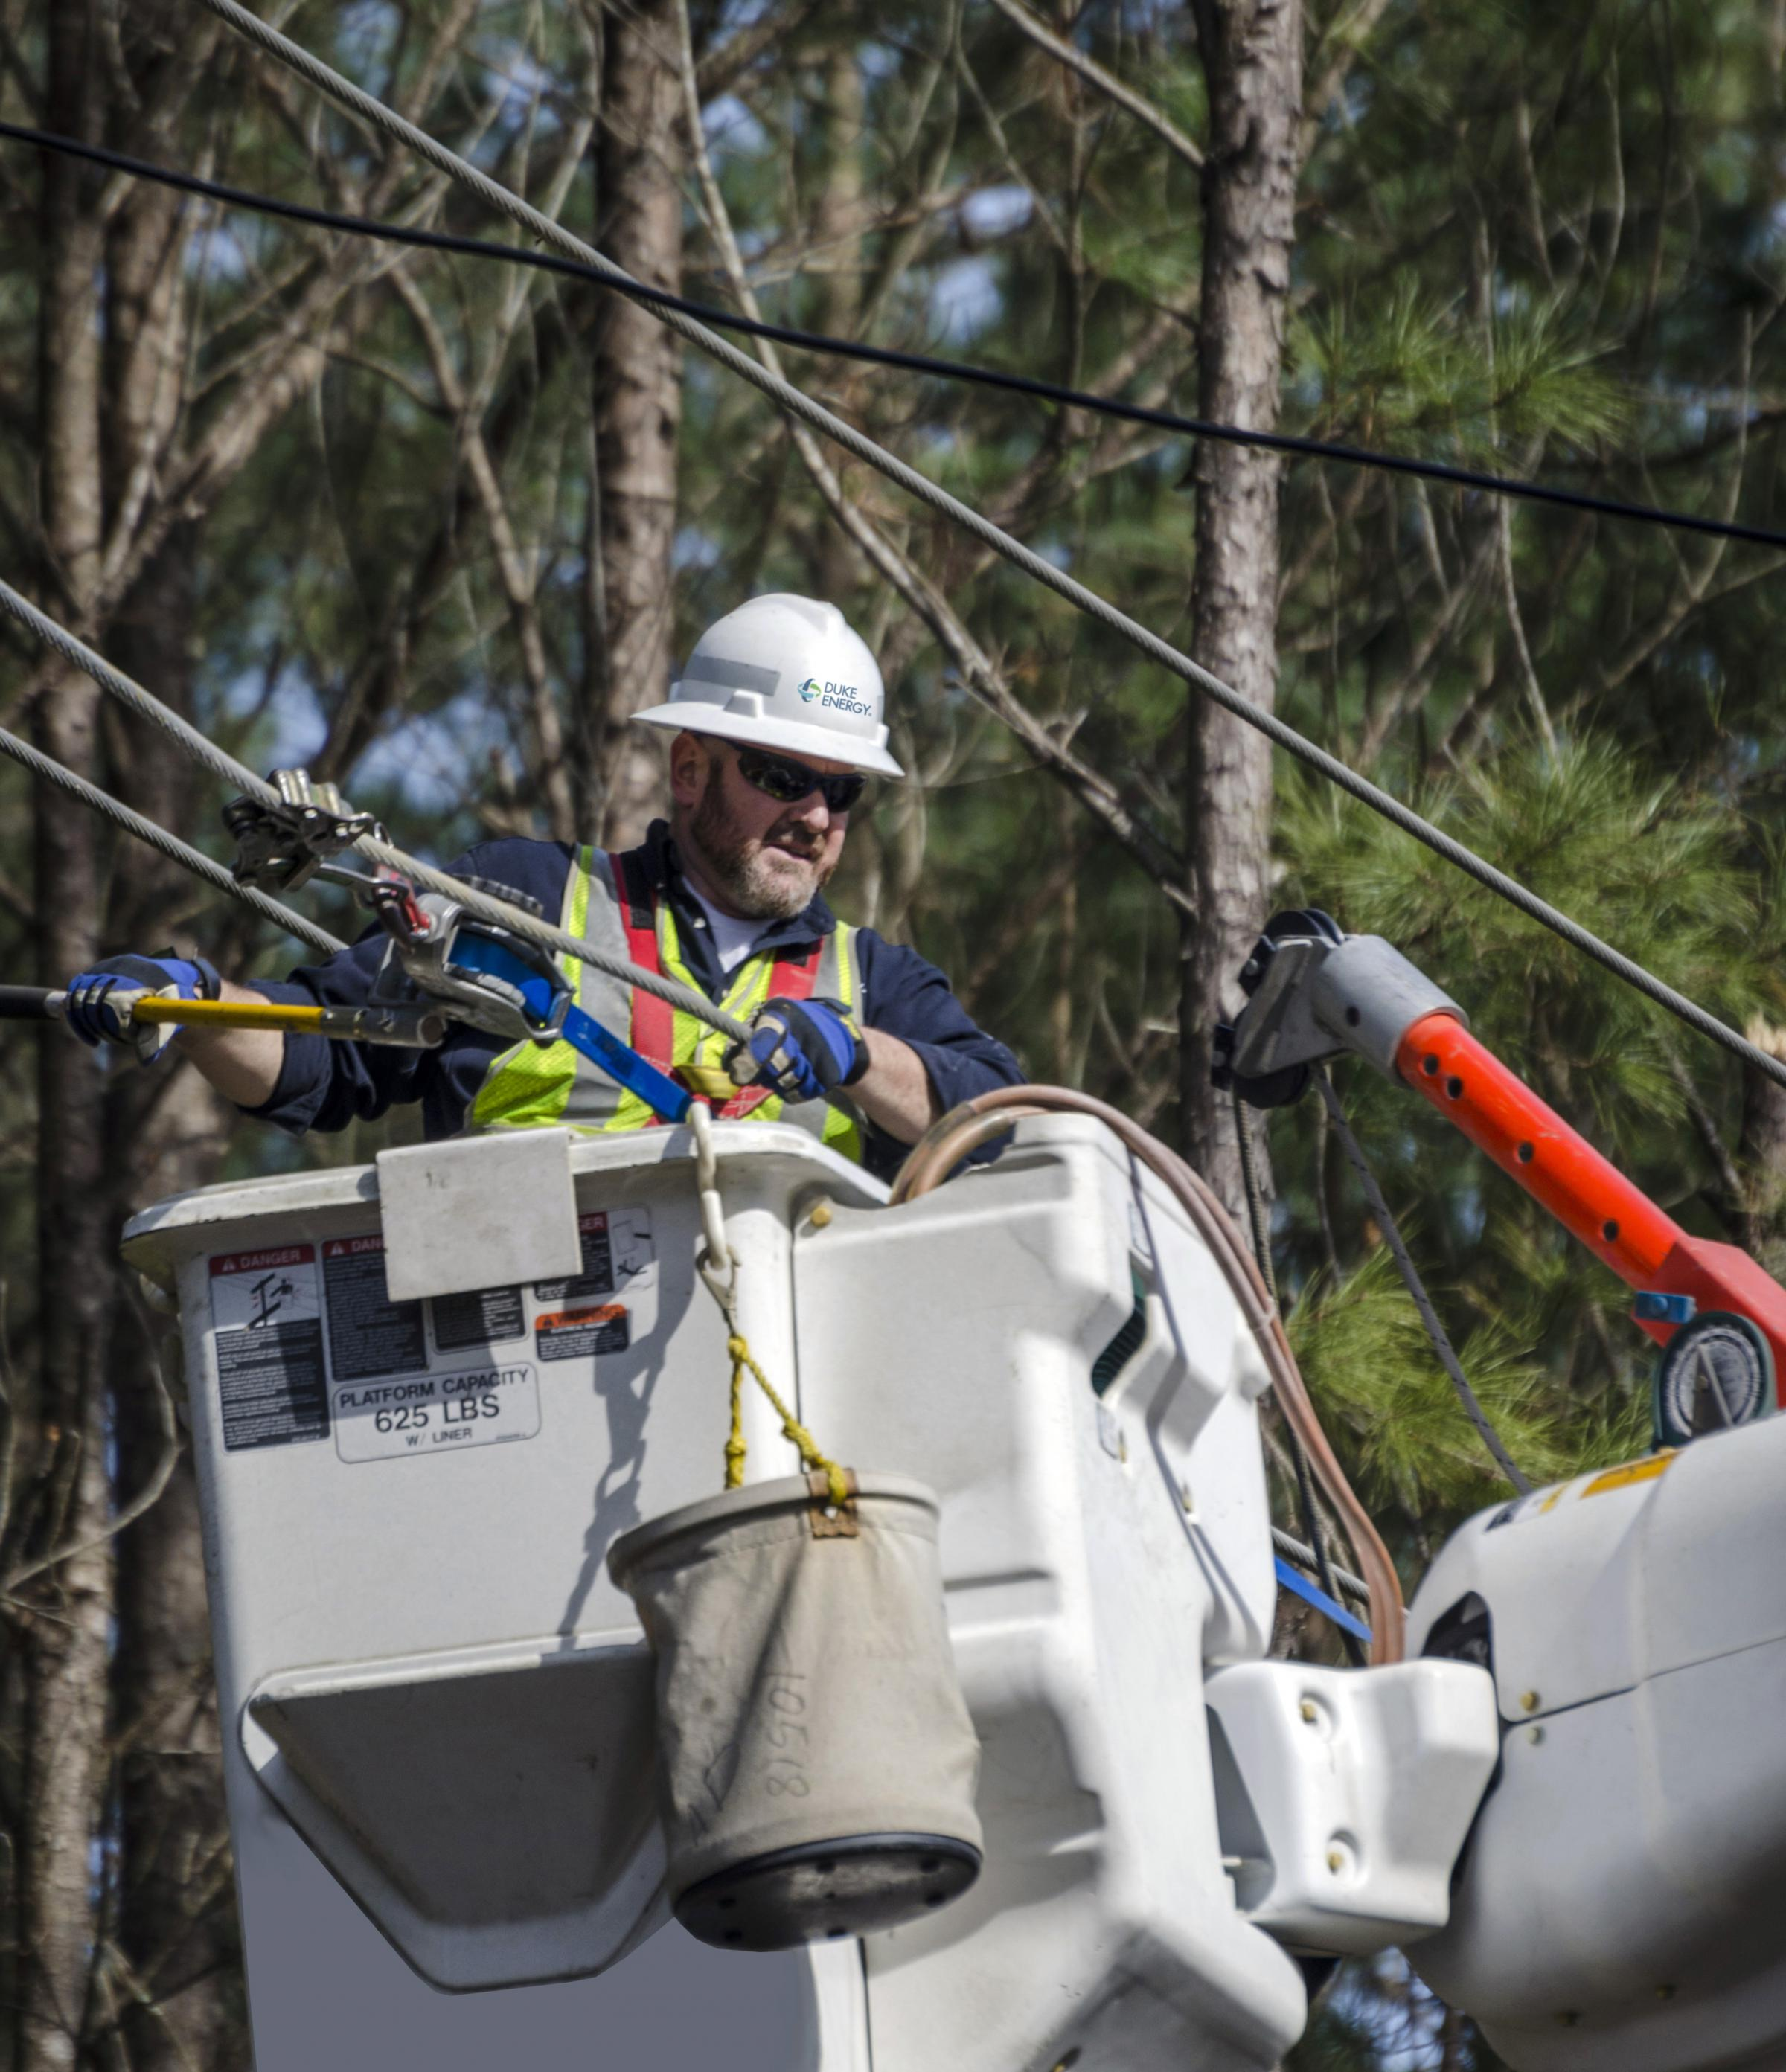 A Duke Energy worker restores power after a storm